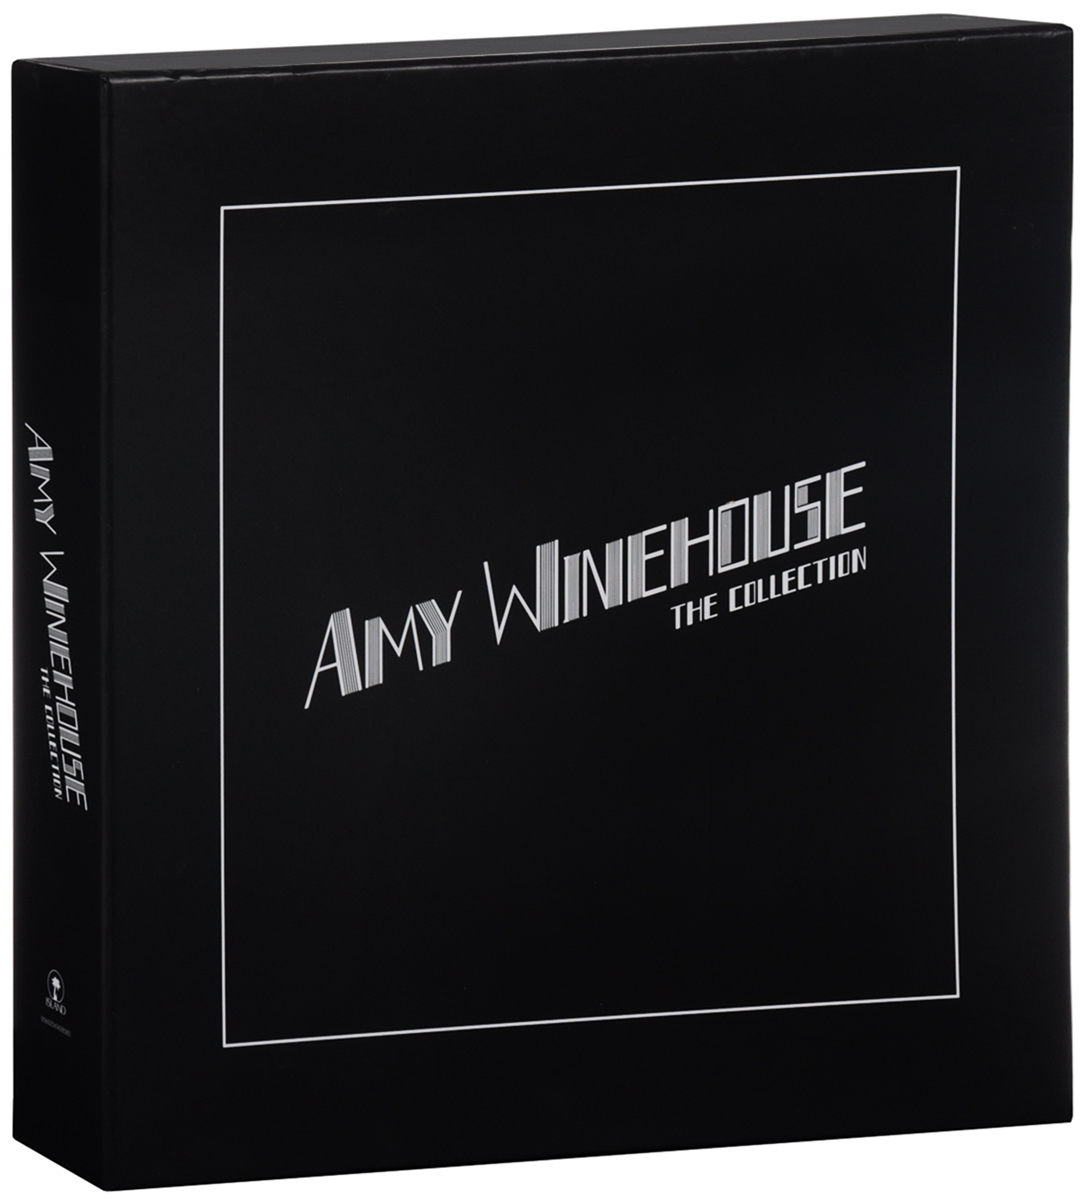 Эми Вайнхаус Amy Winehouse. The Collection. Deluxe Vinyl Boxset (8 LP) amy winehouse i told you i was trouble live in london blu ray